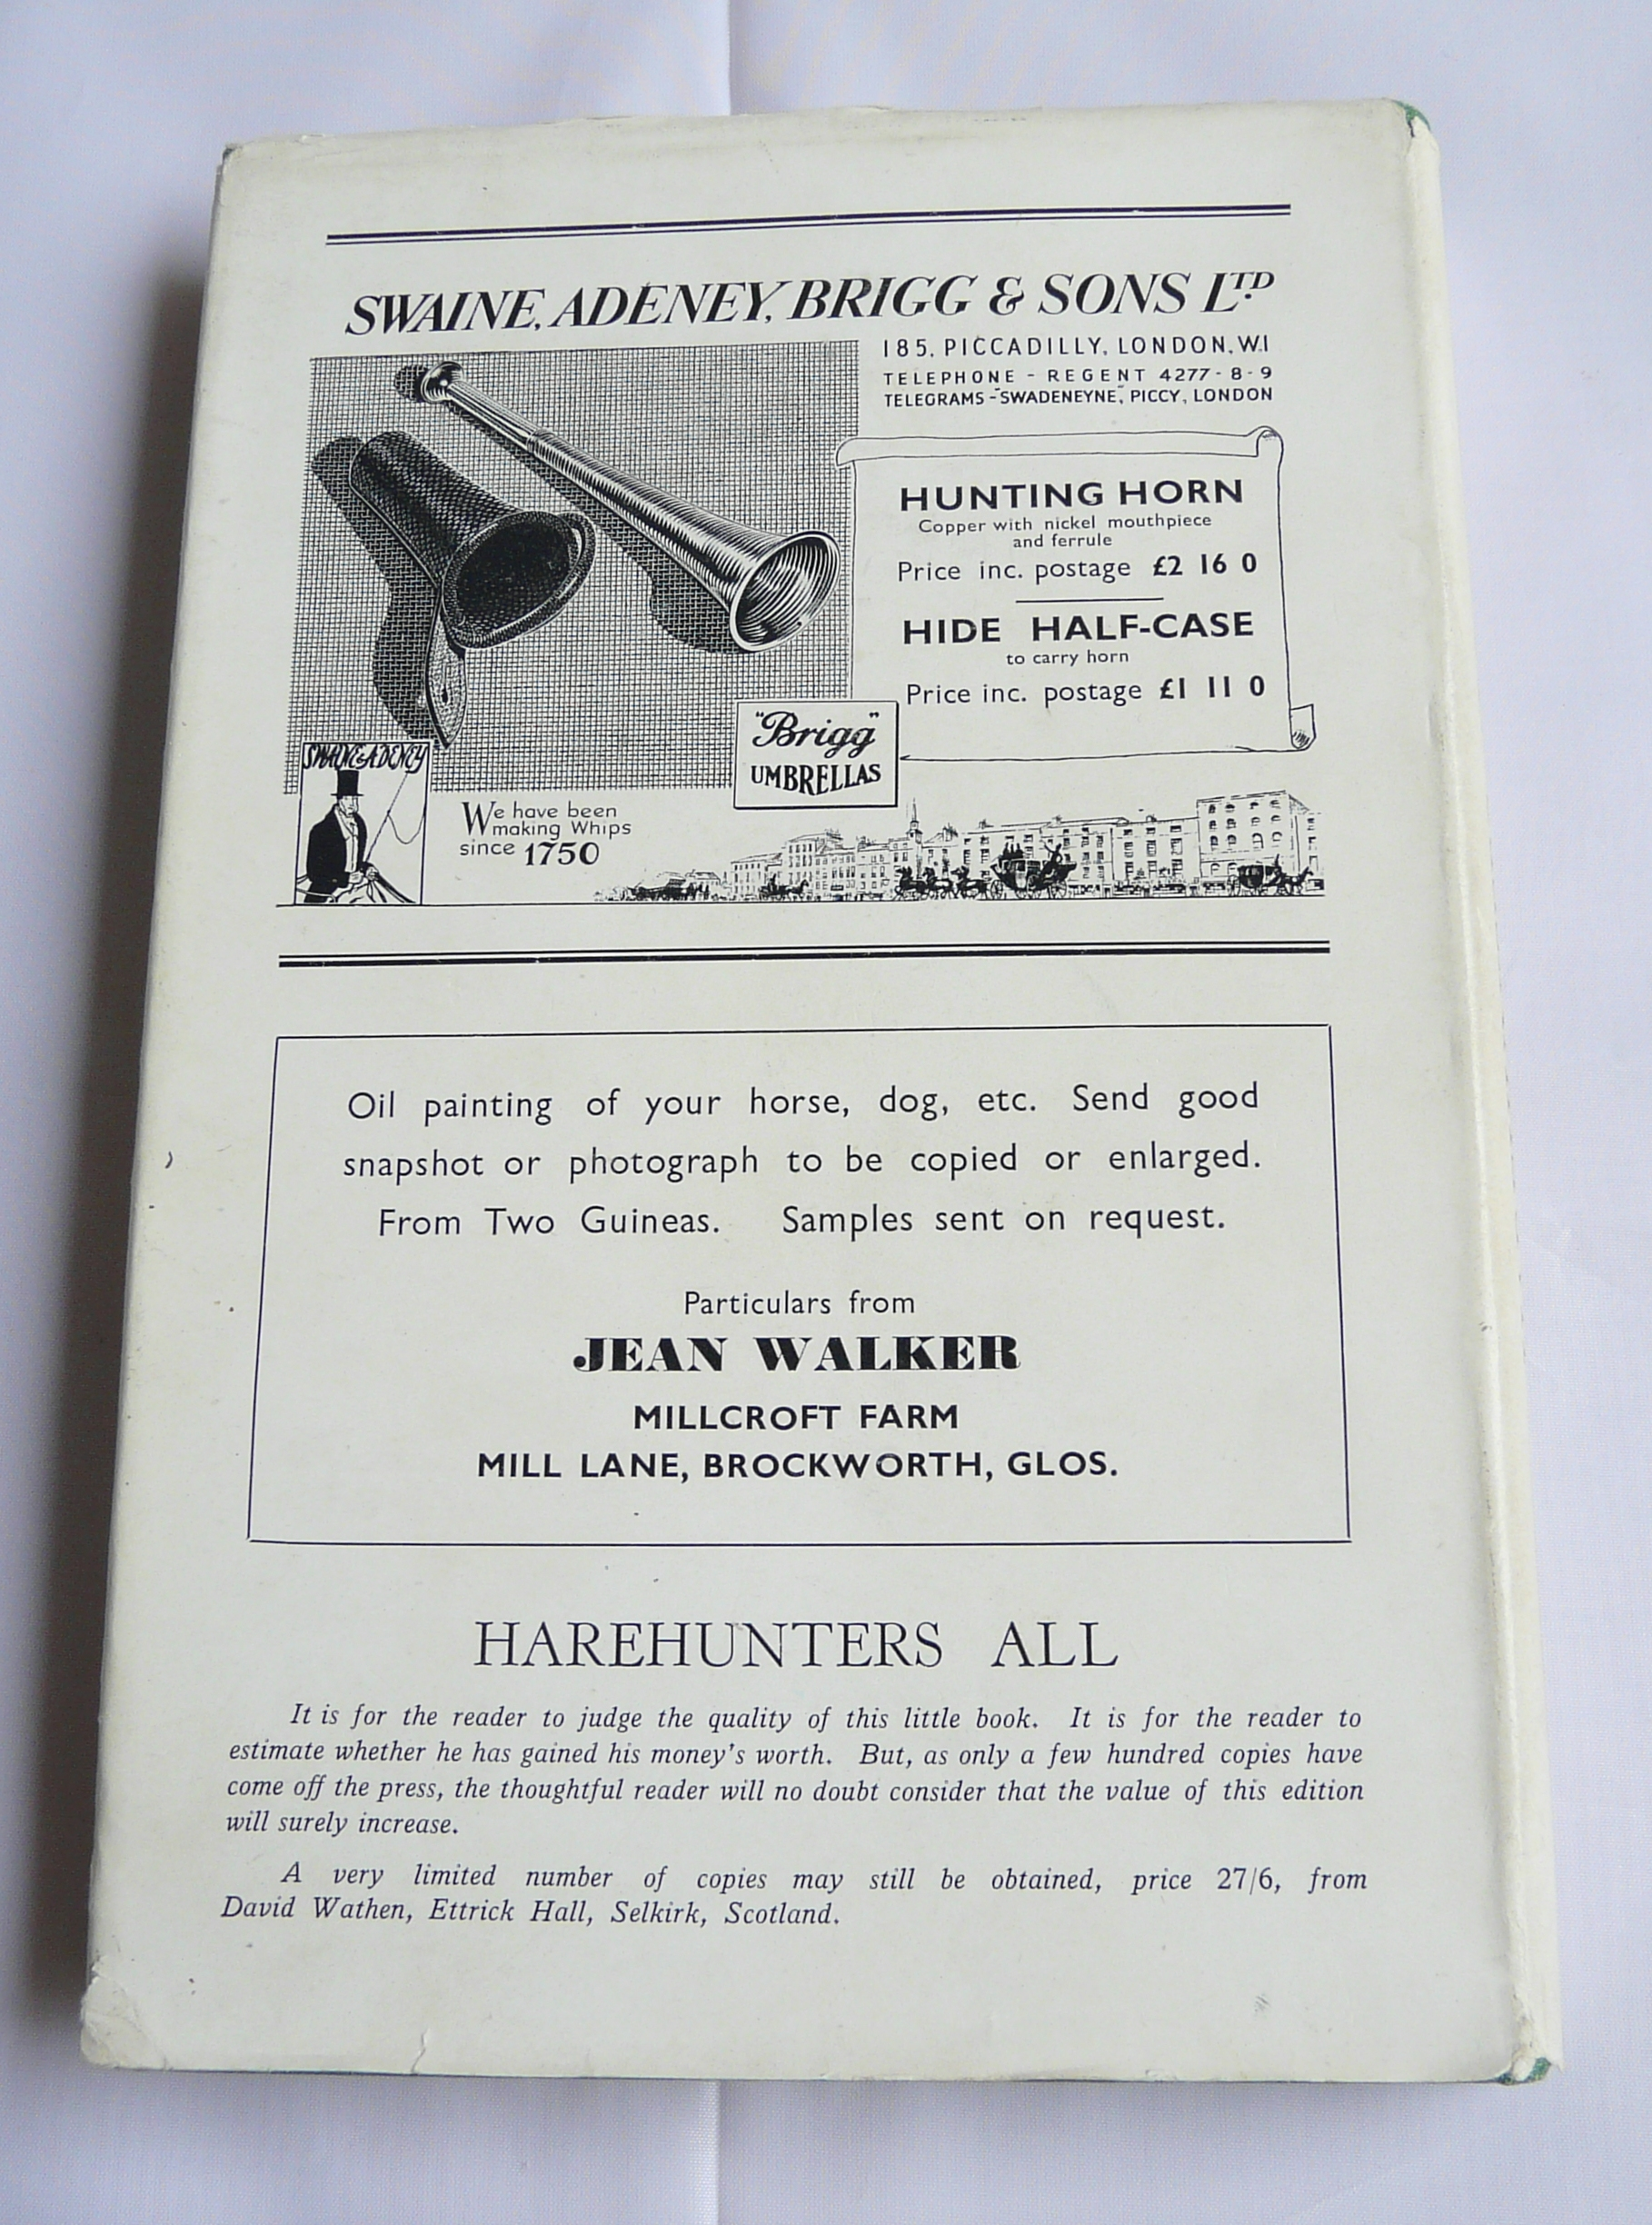 Harehunters All - rear cover